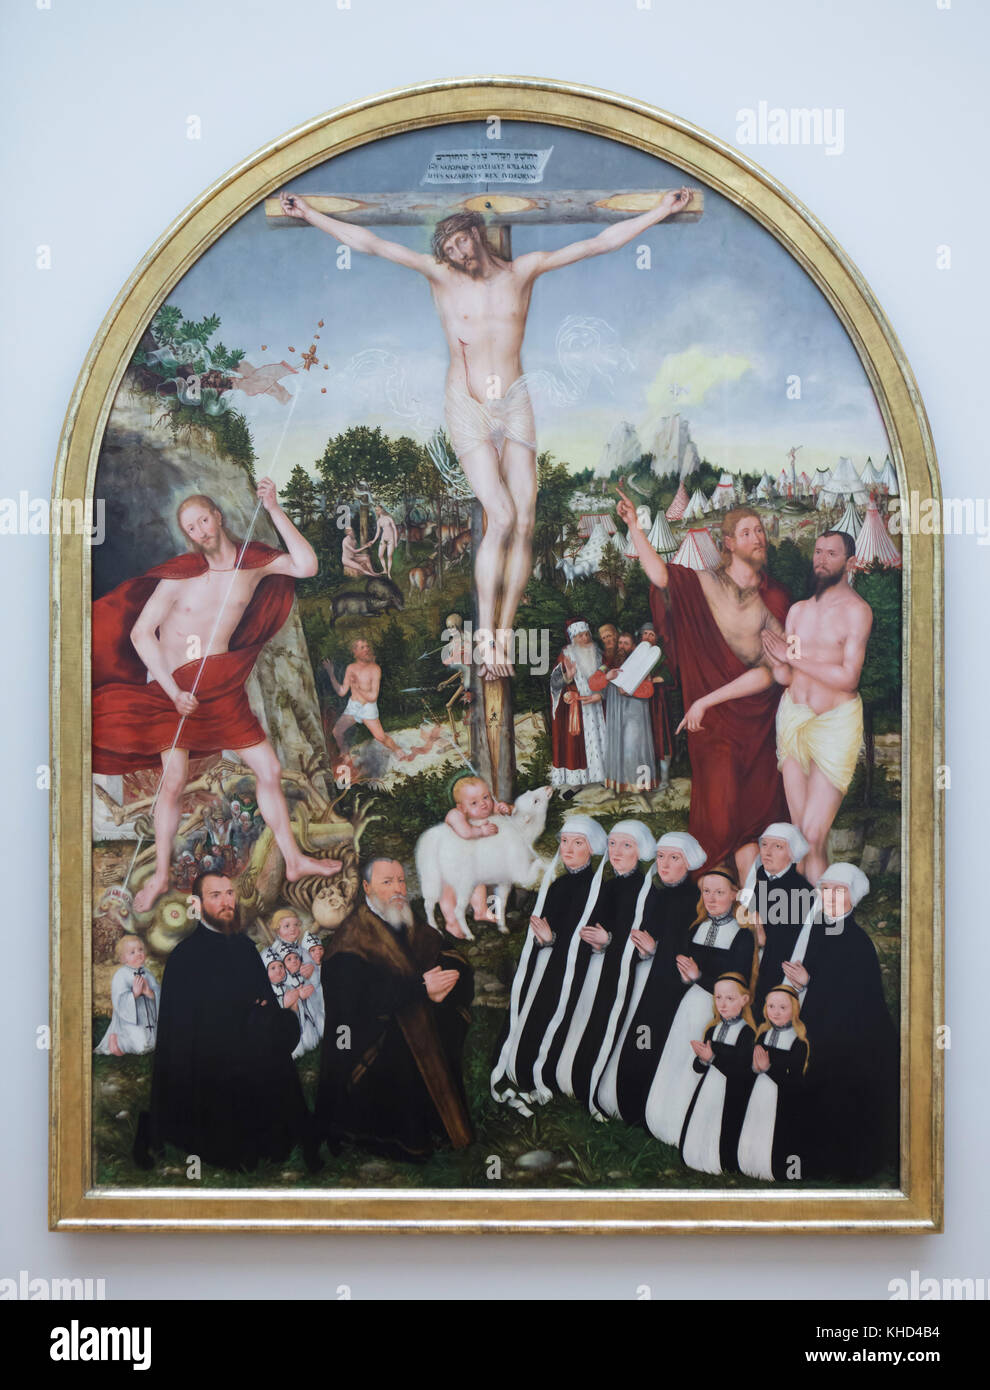 Painting 'The Allegory of Salvation and Sin' (1557) by German Renaissance painter Lucas Cranach the Younger - Stock Image